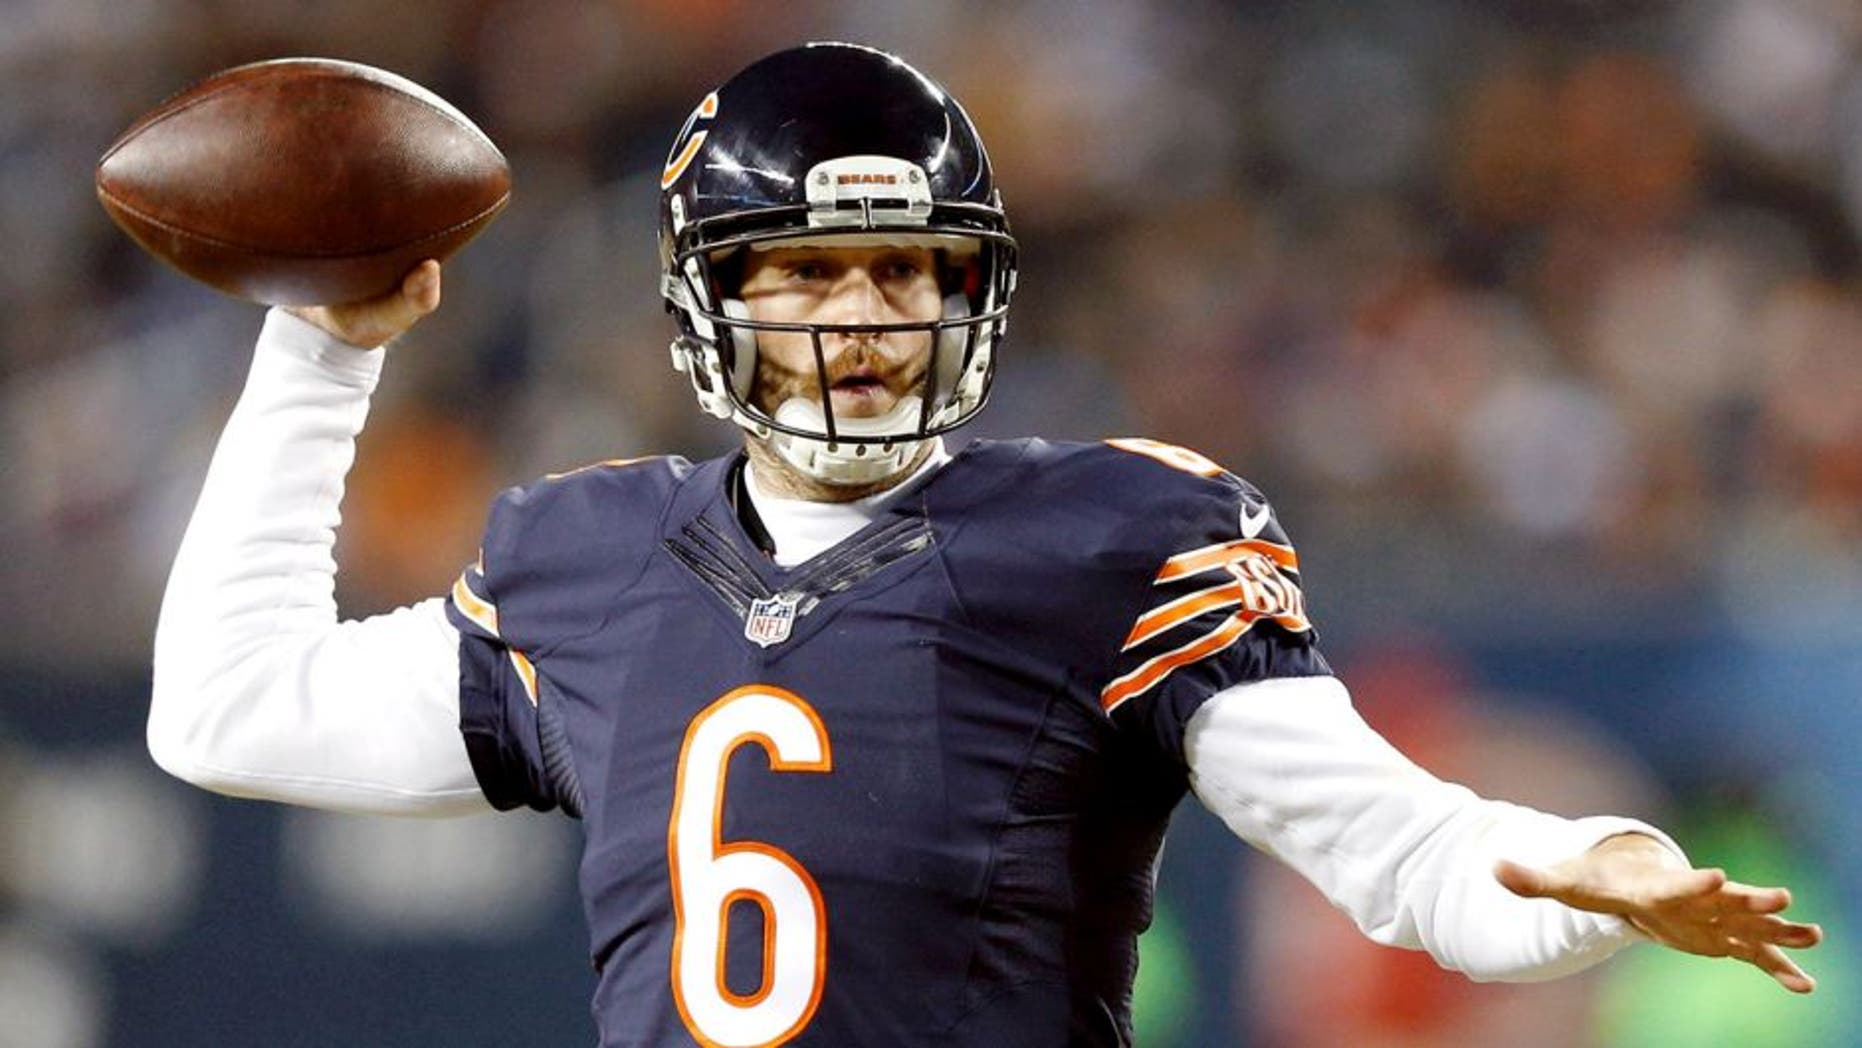 CHICAGO, IL - DECEMBER 4: Jay Cutler #6 of the Chicago Bears passes the ball against the Dallas Cowboys during the game at Soldier Field on December 4, 2014 in Chicago, Illinios. The Cowboys defeated the Bears 41-28. (Photo by Joe Robbins/Getty Images)